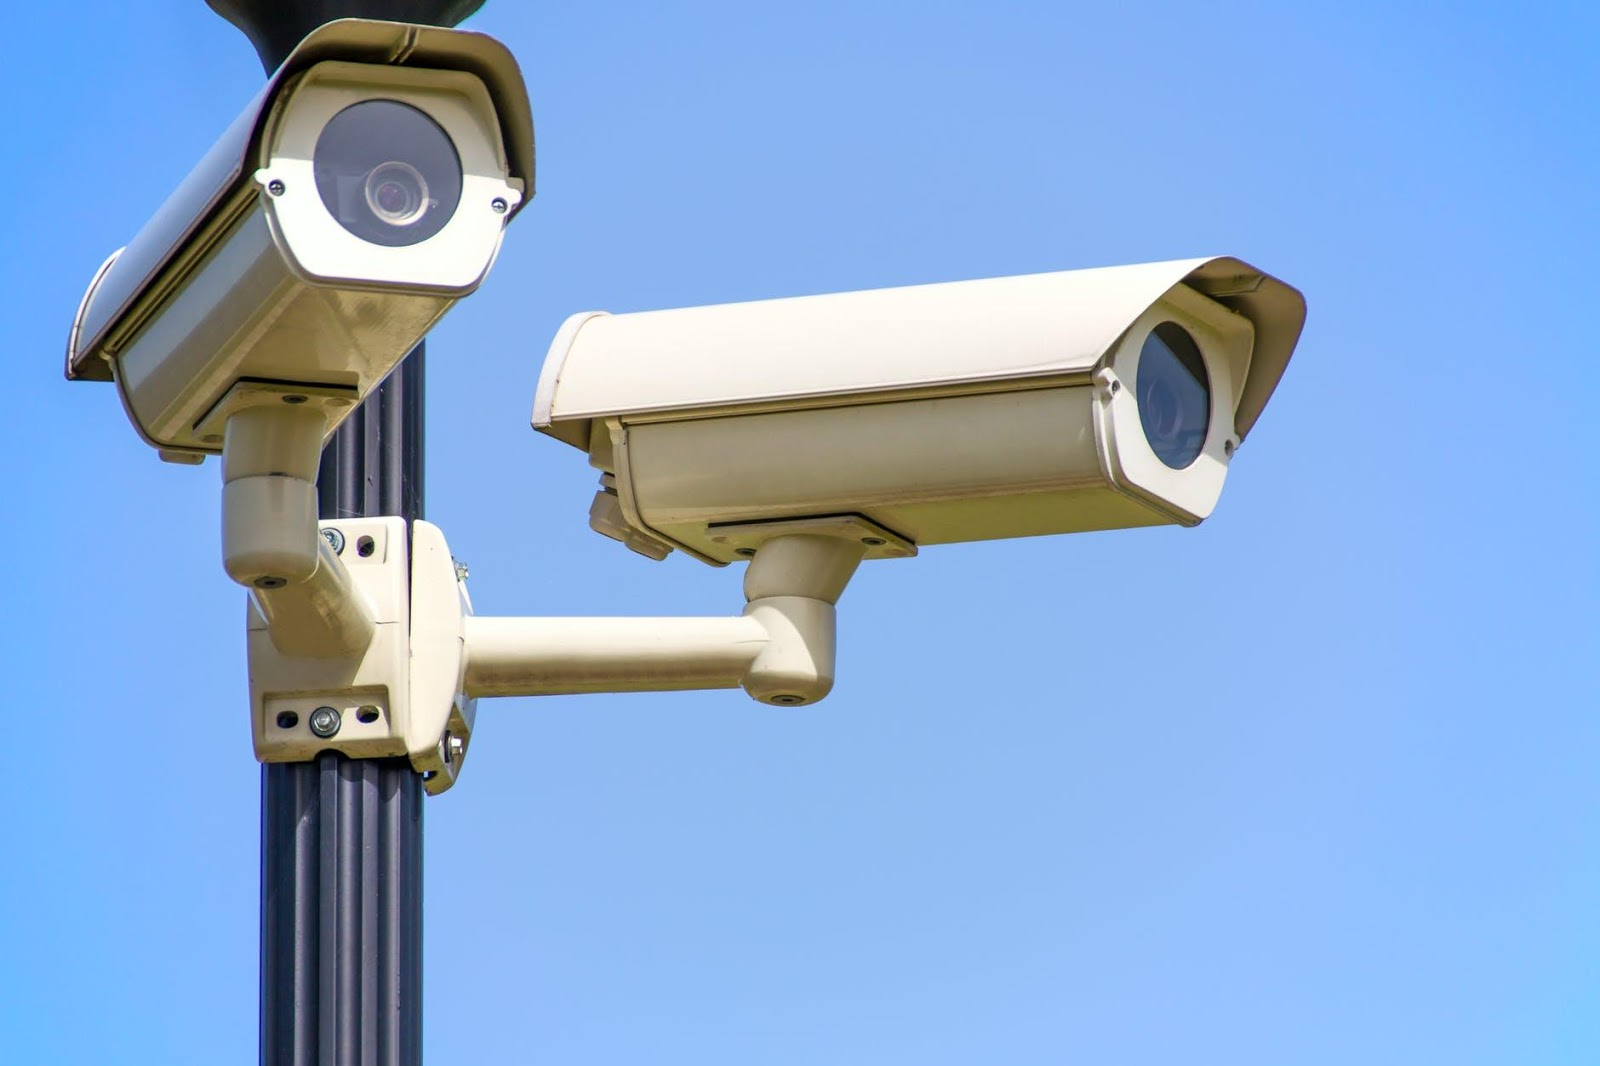 Why Installing CCTV Cameras Is All the Rage Now